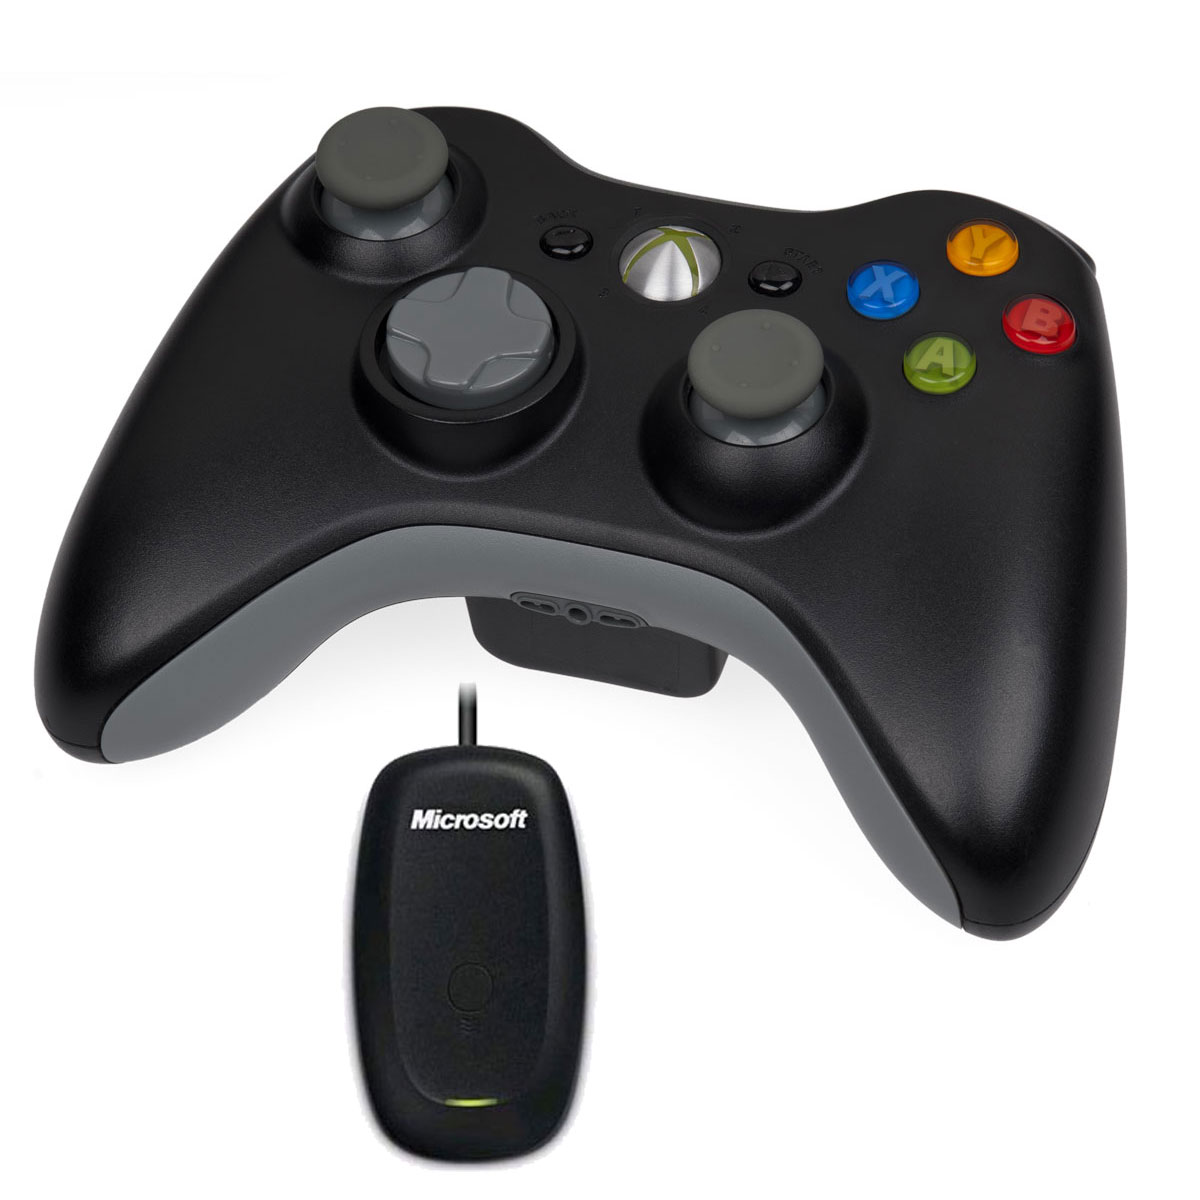 Connecter manette xbox 360 sans fil sur pc bluetooth for Manette xbox 360 pas cher sans fil